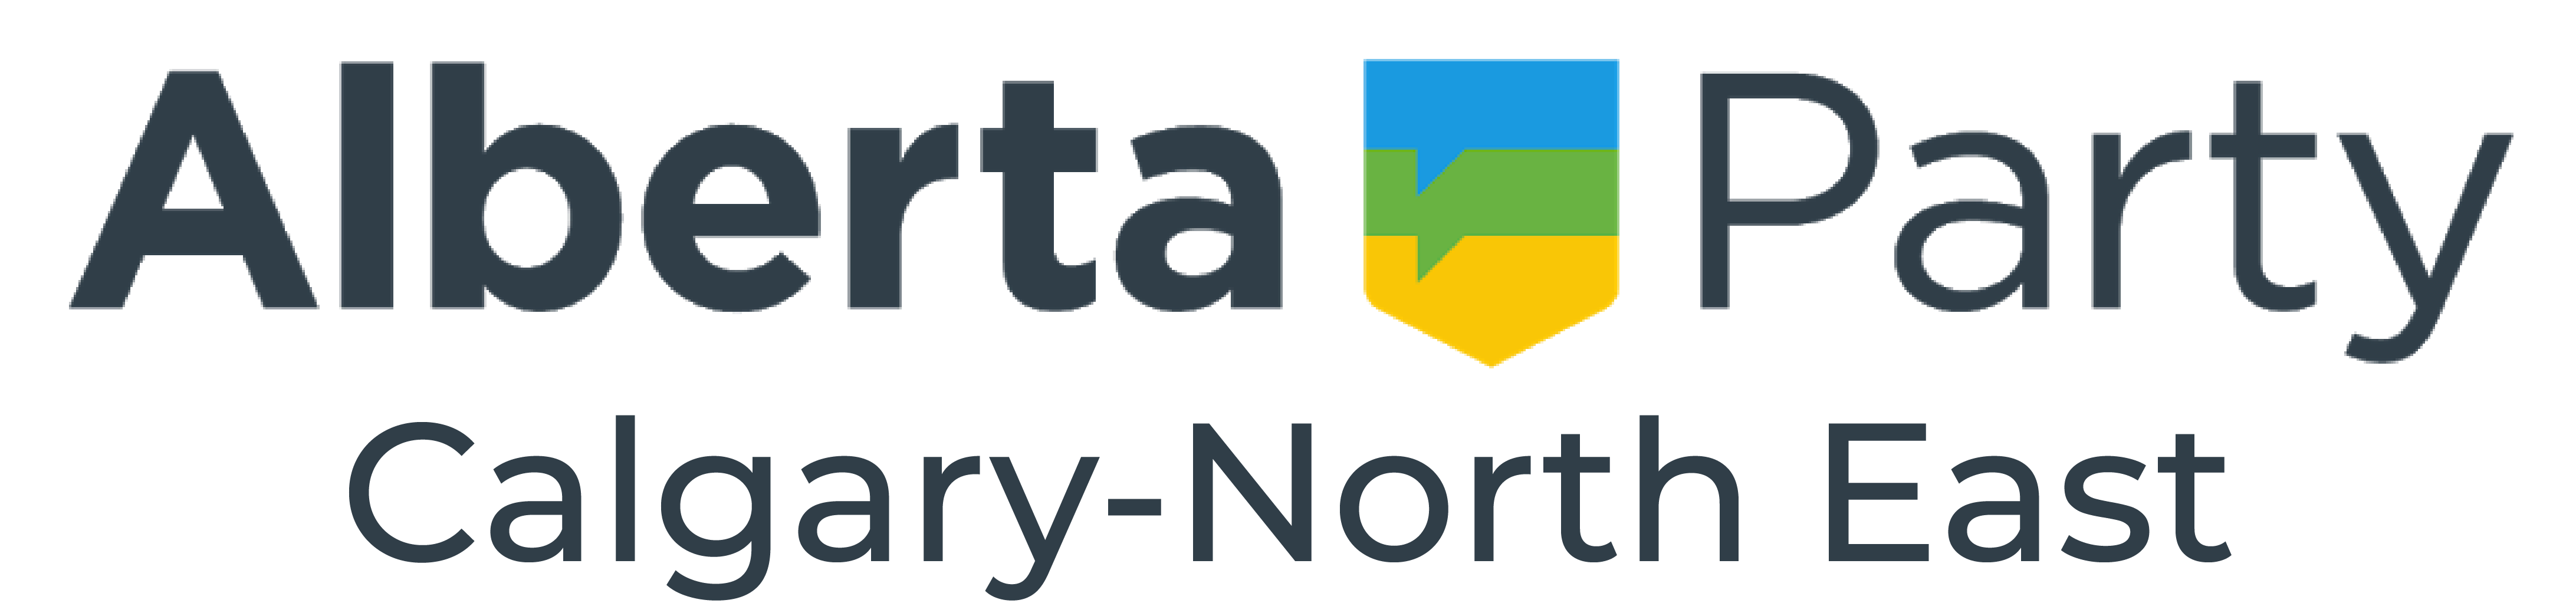 Alberta Party | Calgary-North East